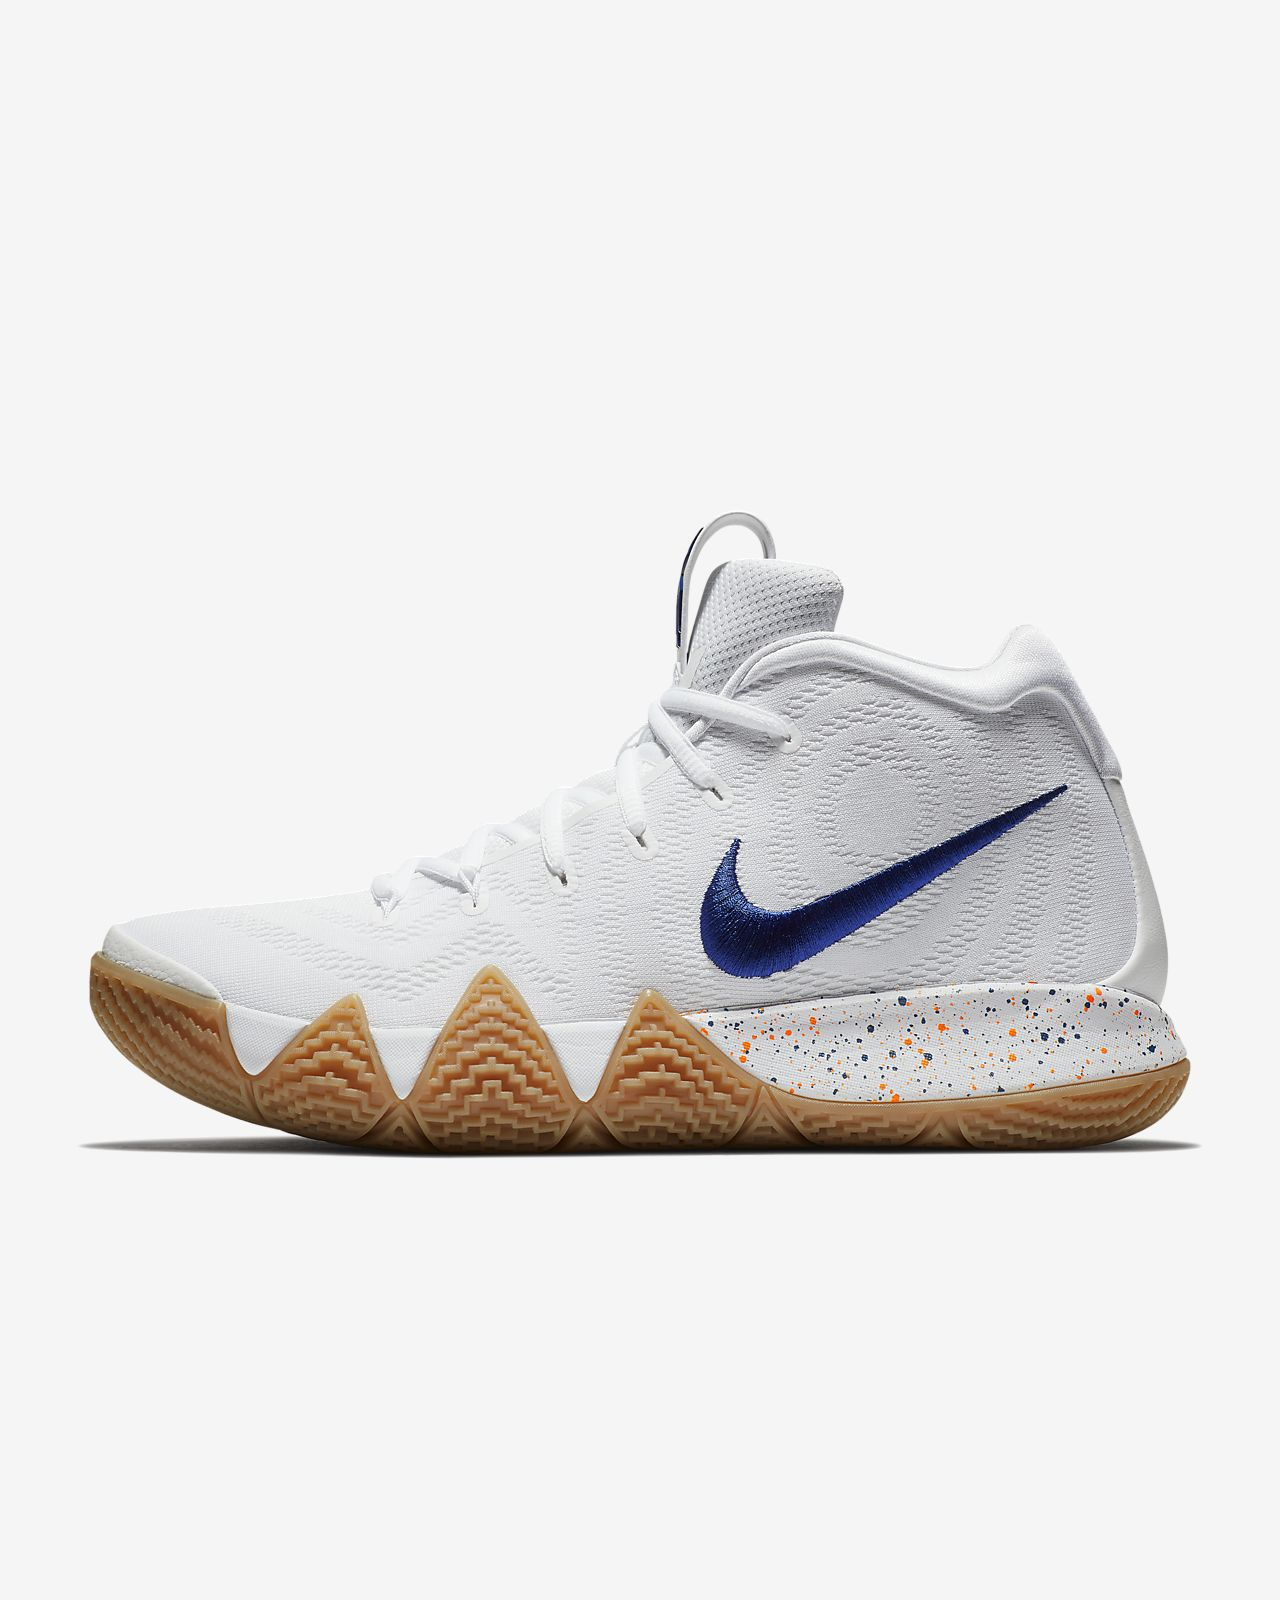 on sale 662c0 3ae09 Kyrie 4 'Uncle Drew' Basketball Shoe